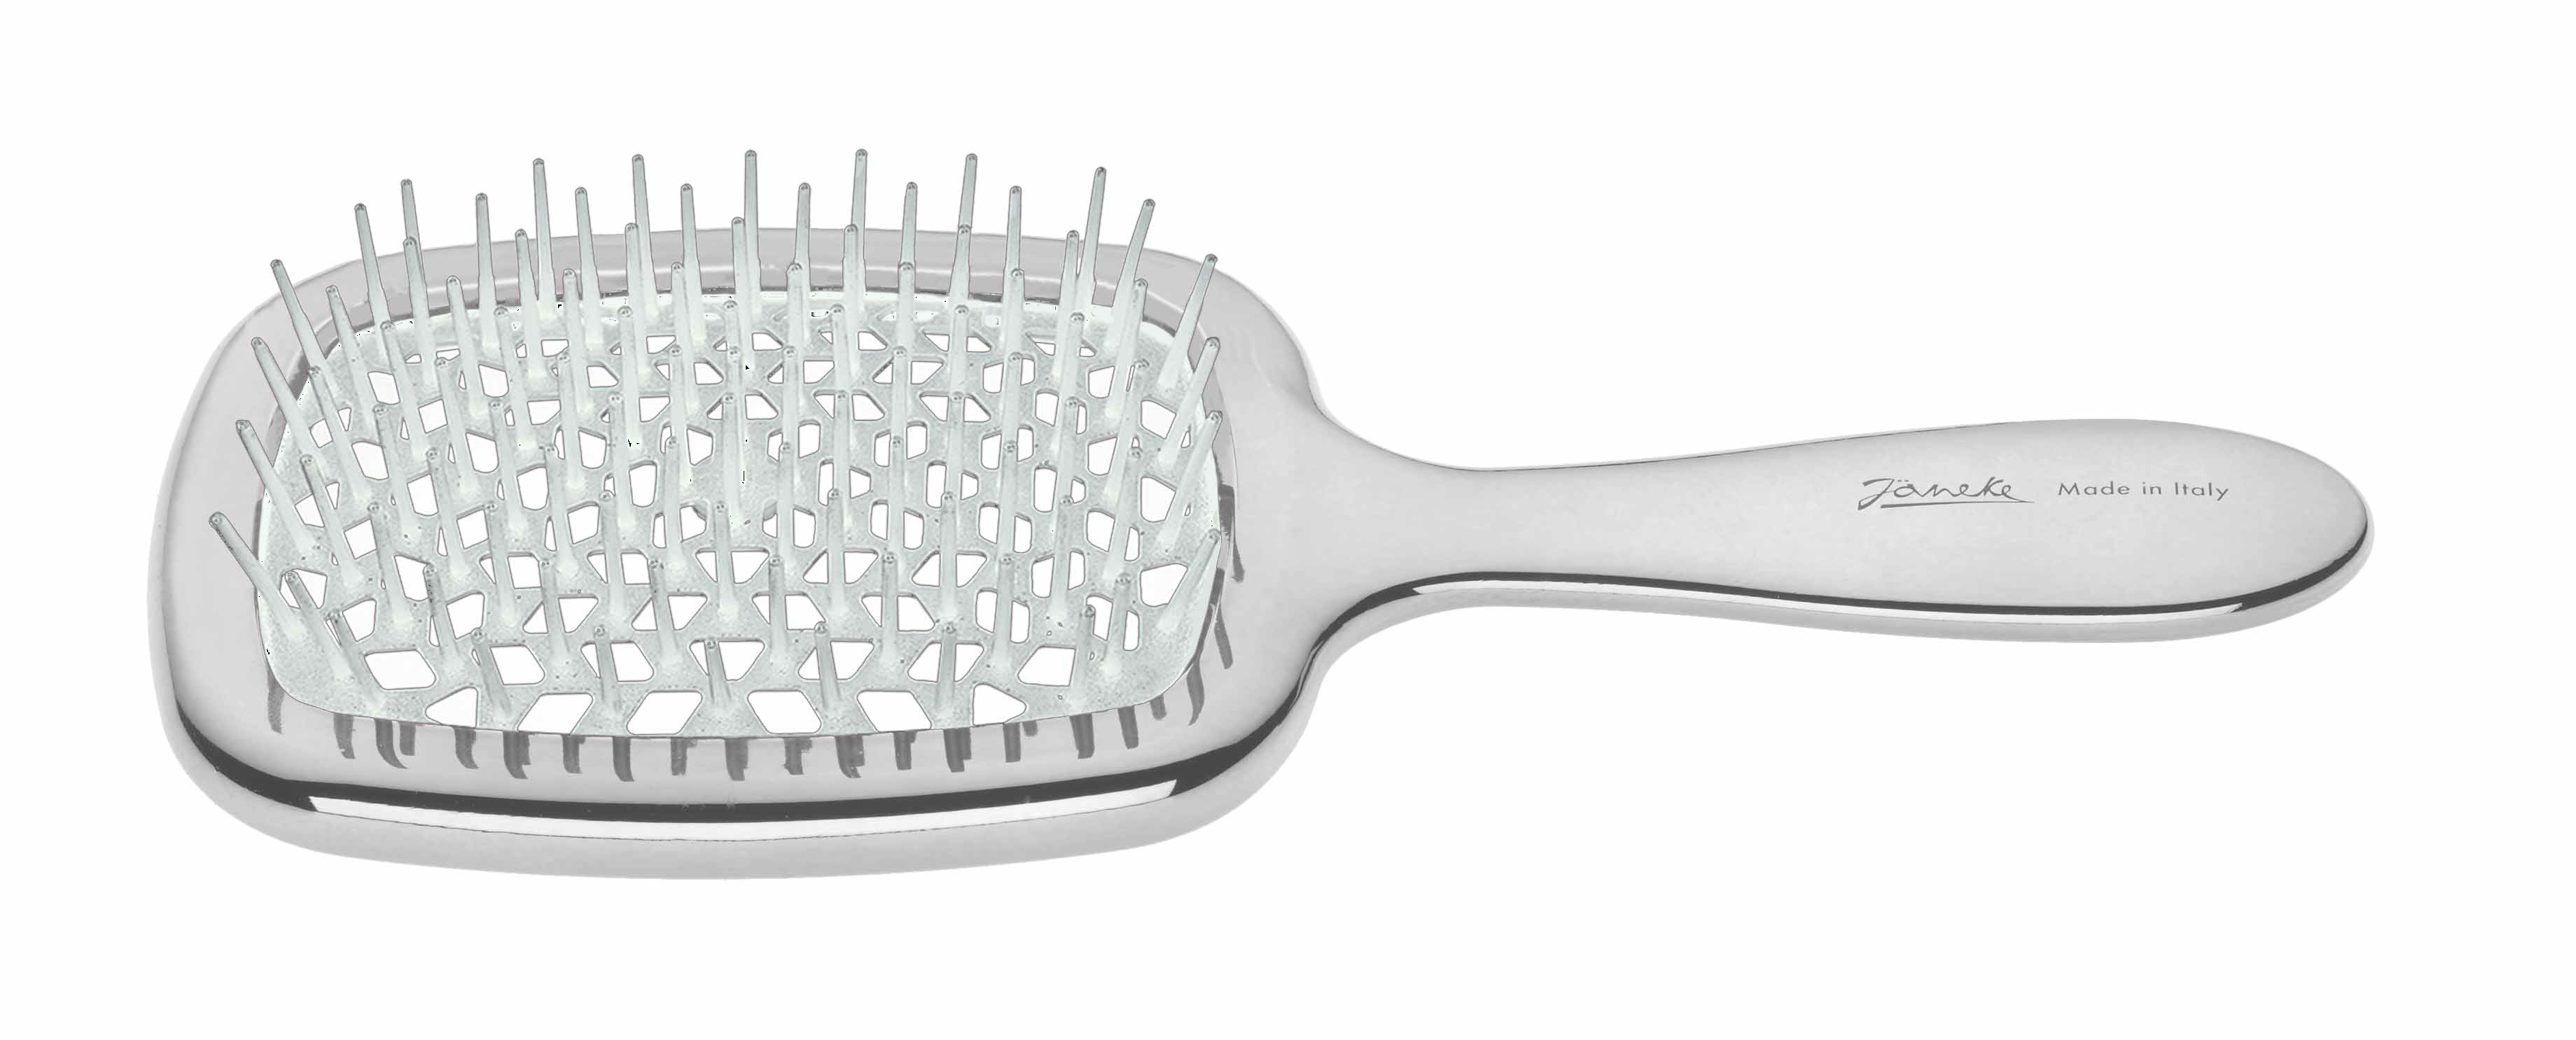 Chromium rectangular hairbrush